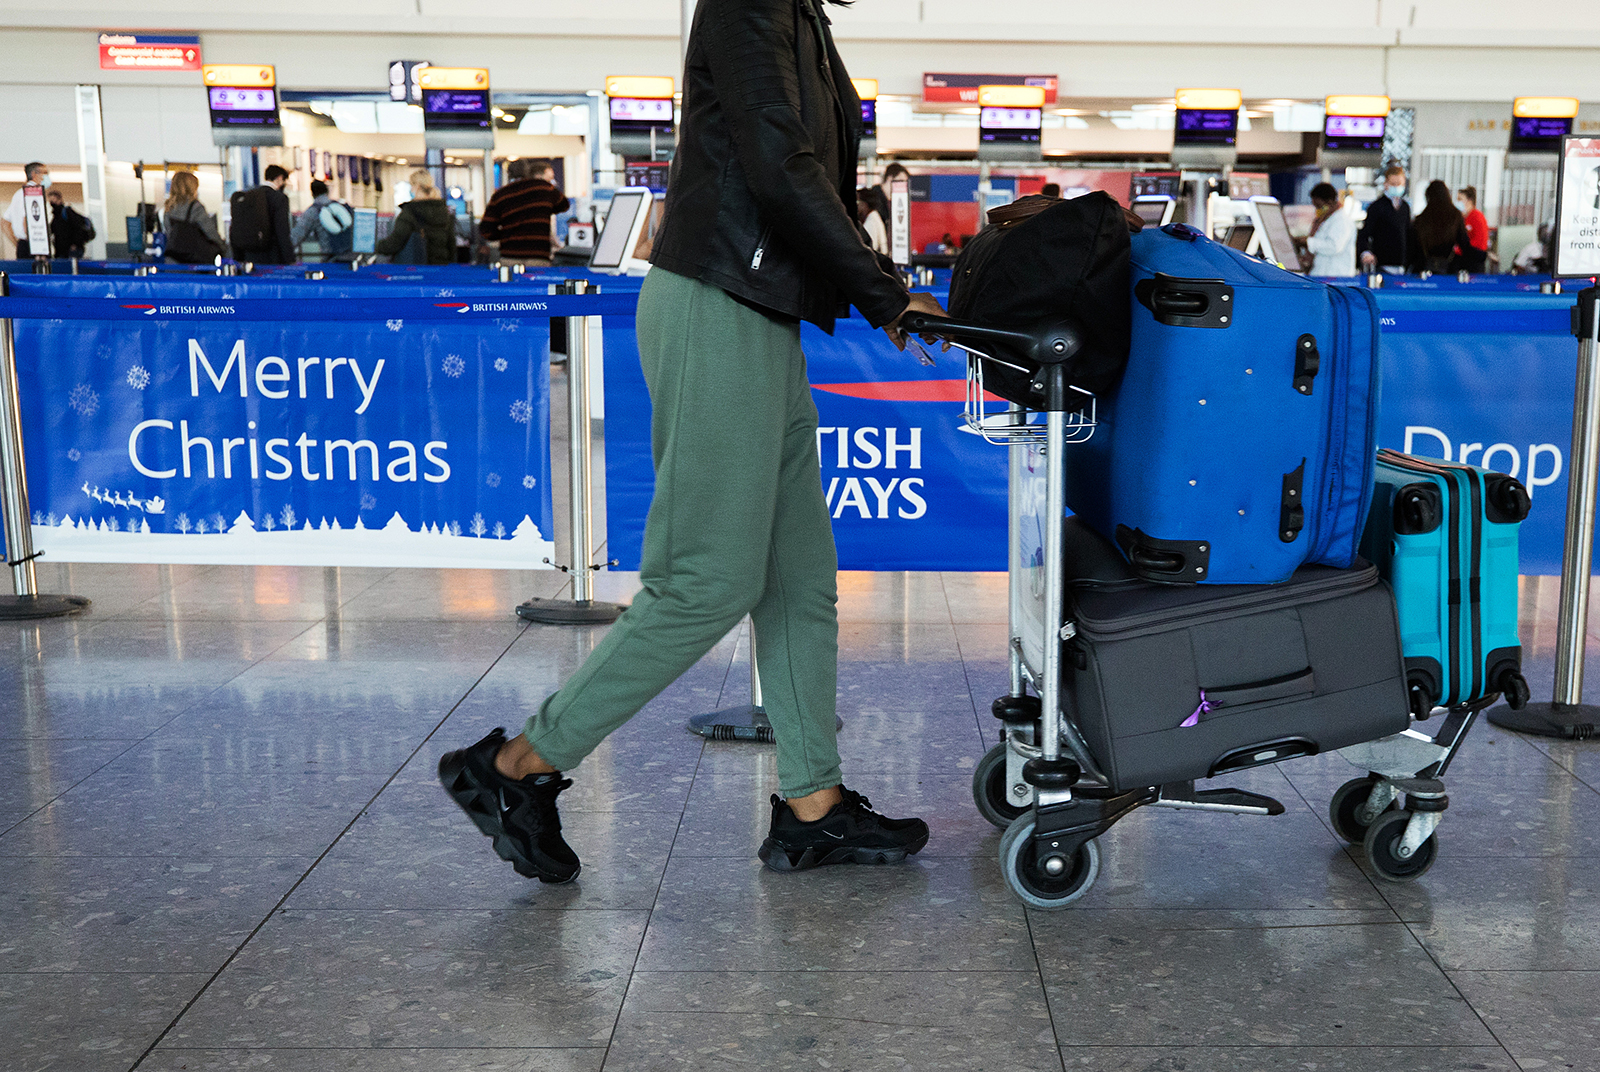 A passenger passes a 'Merry Christmas' sign in the check-in area at London Heathrow Airport in London, on December 19.